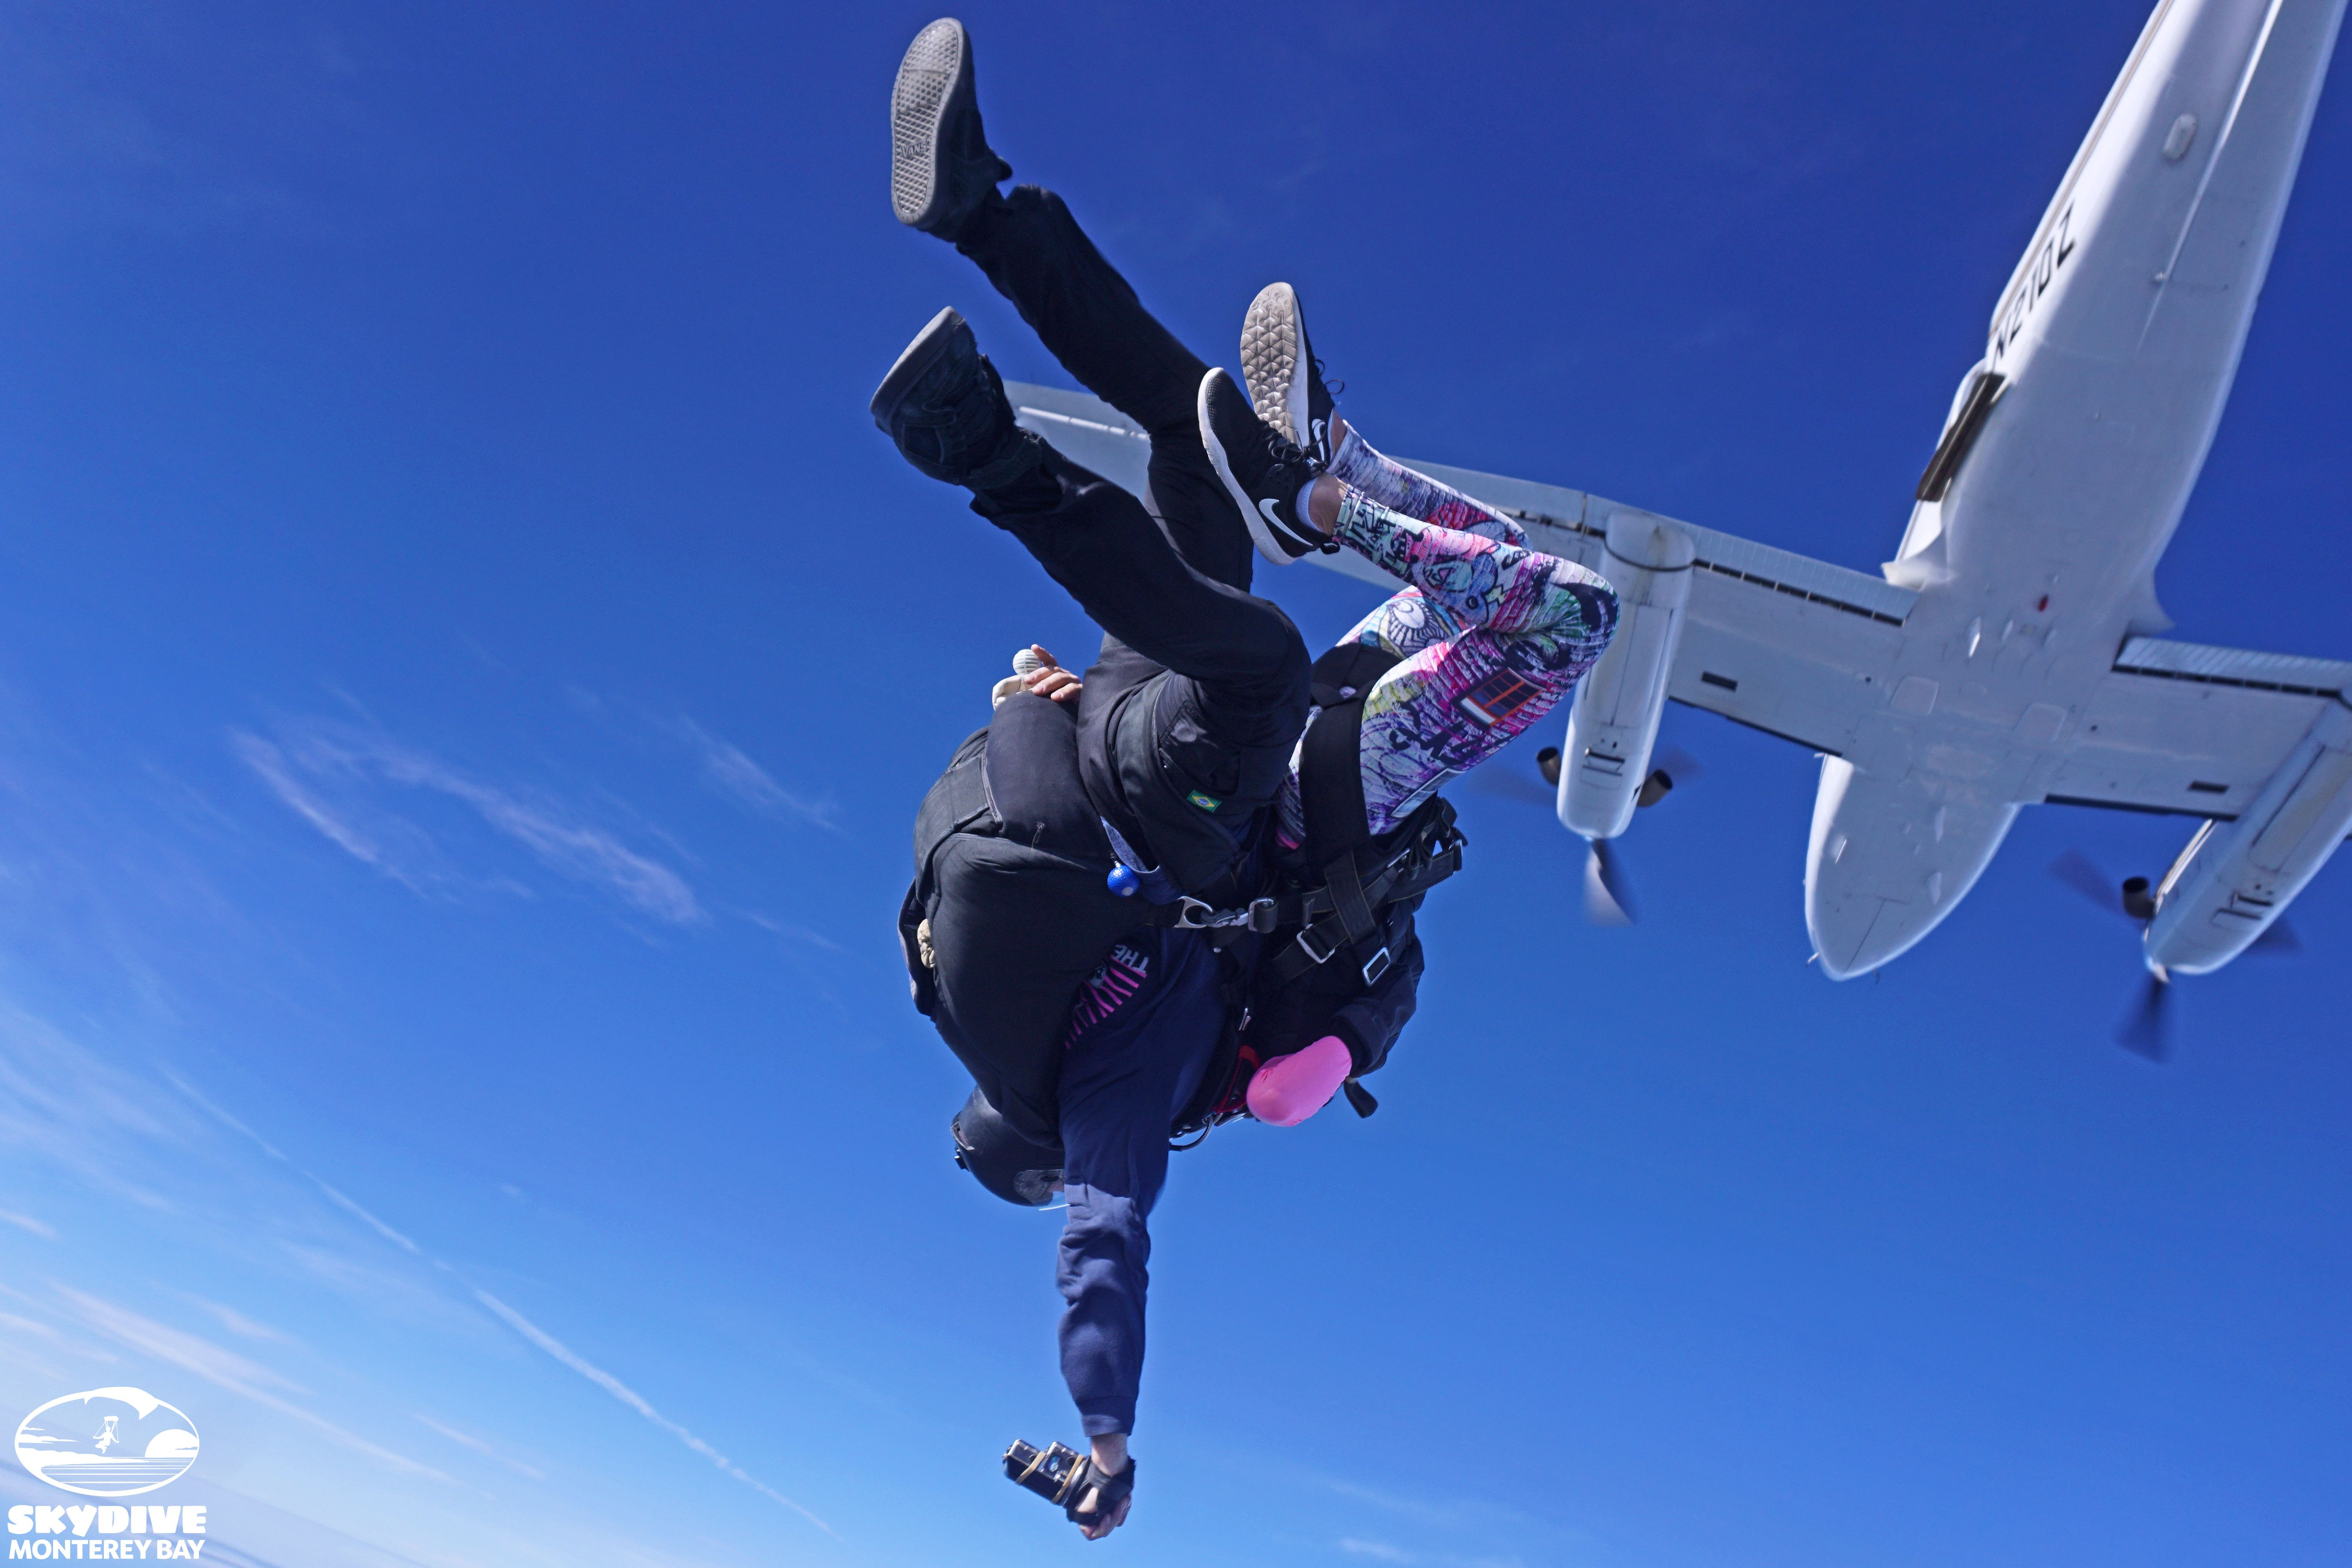 Best Colors To Wear For Skydiving Skydiving Experience Skydiving Paragliding